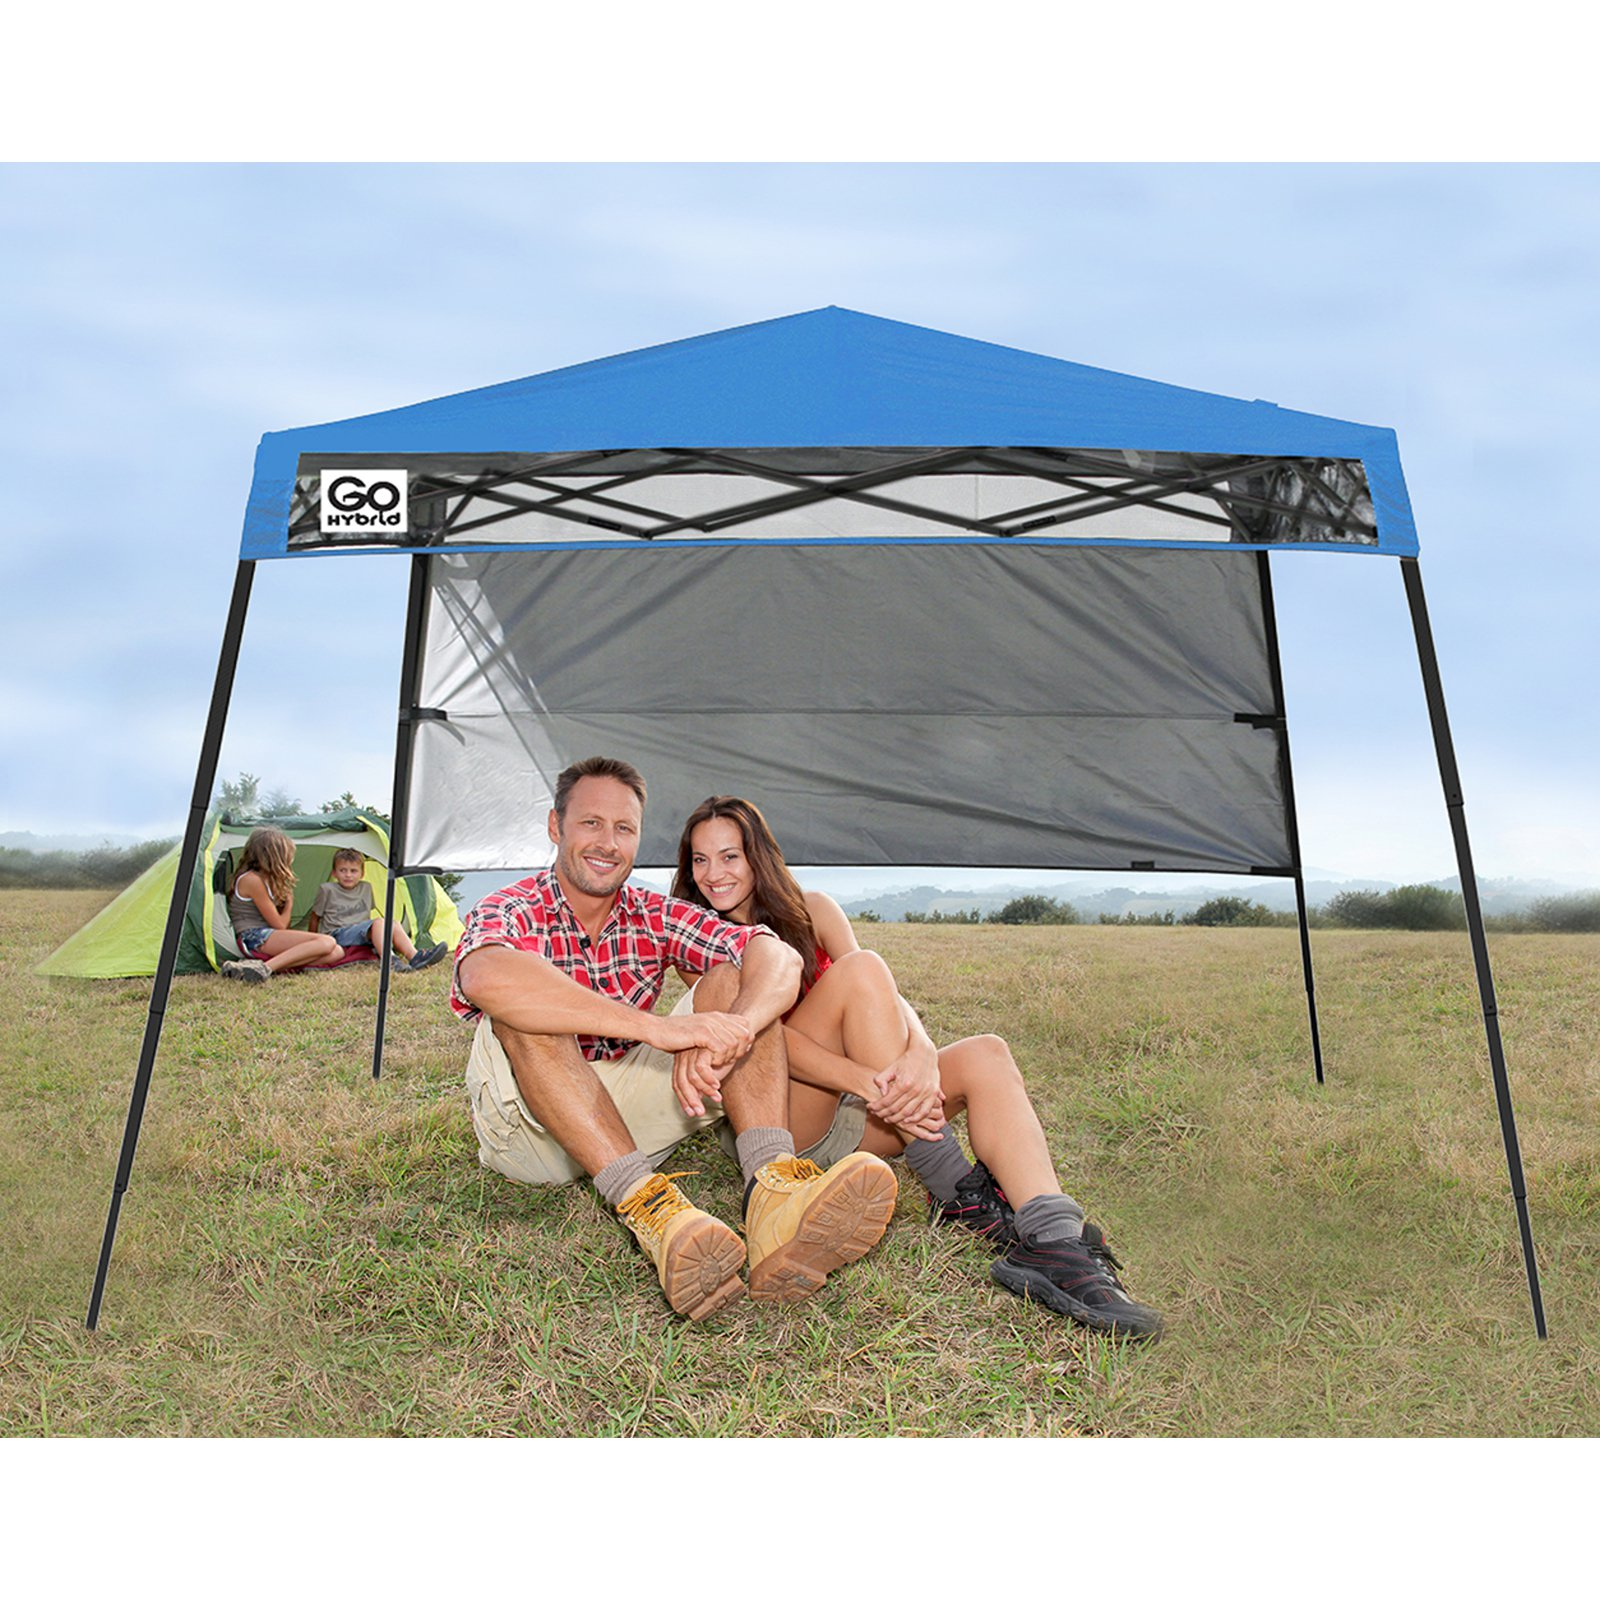 Quik Shade Go Hybrid Slant Leg 7'x7' Instant Canopy (36 sq. ft. coverage) by ShelterLogic Corp.